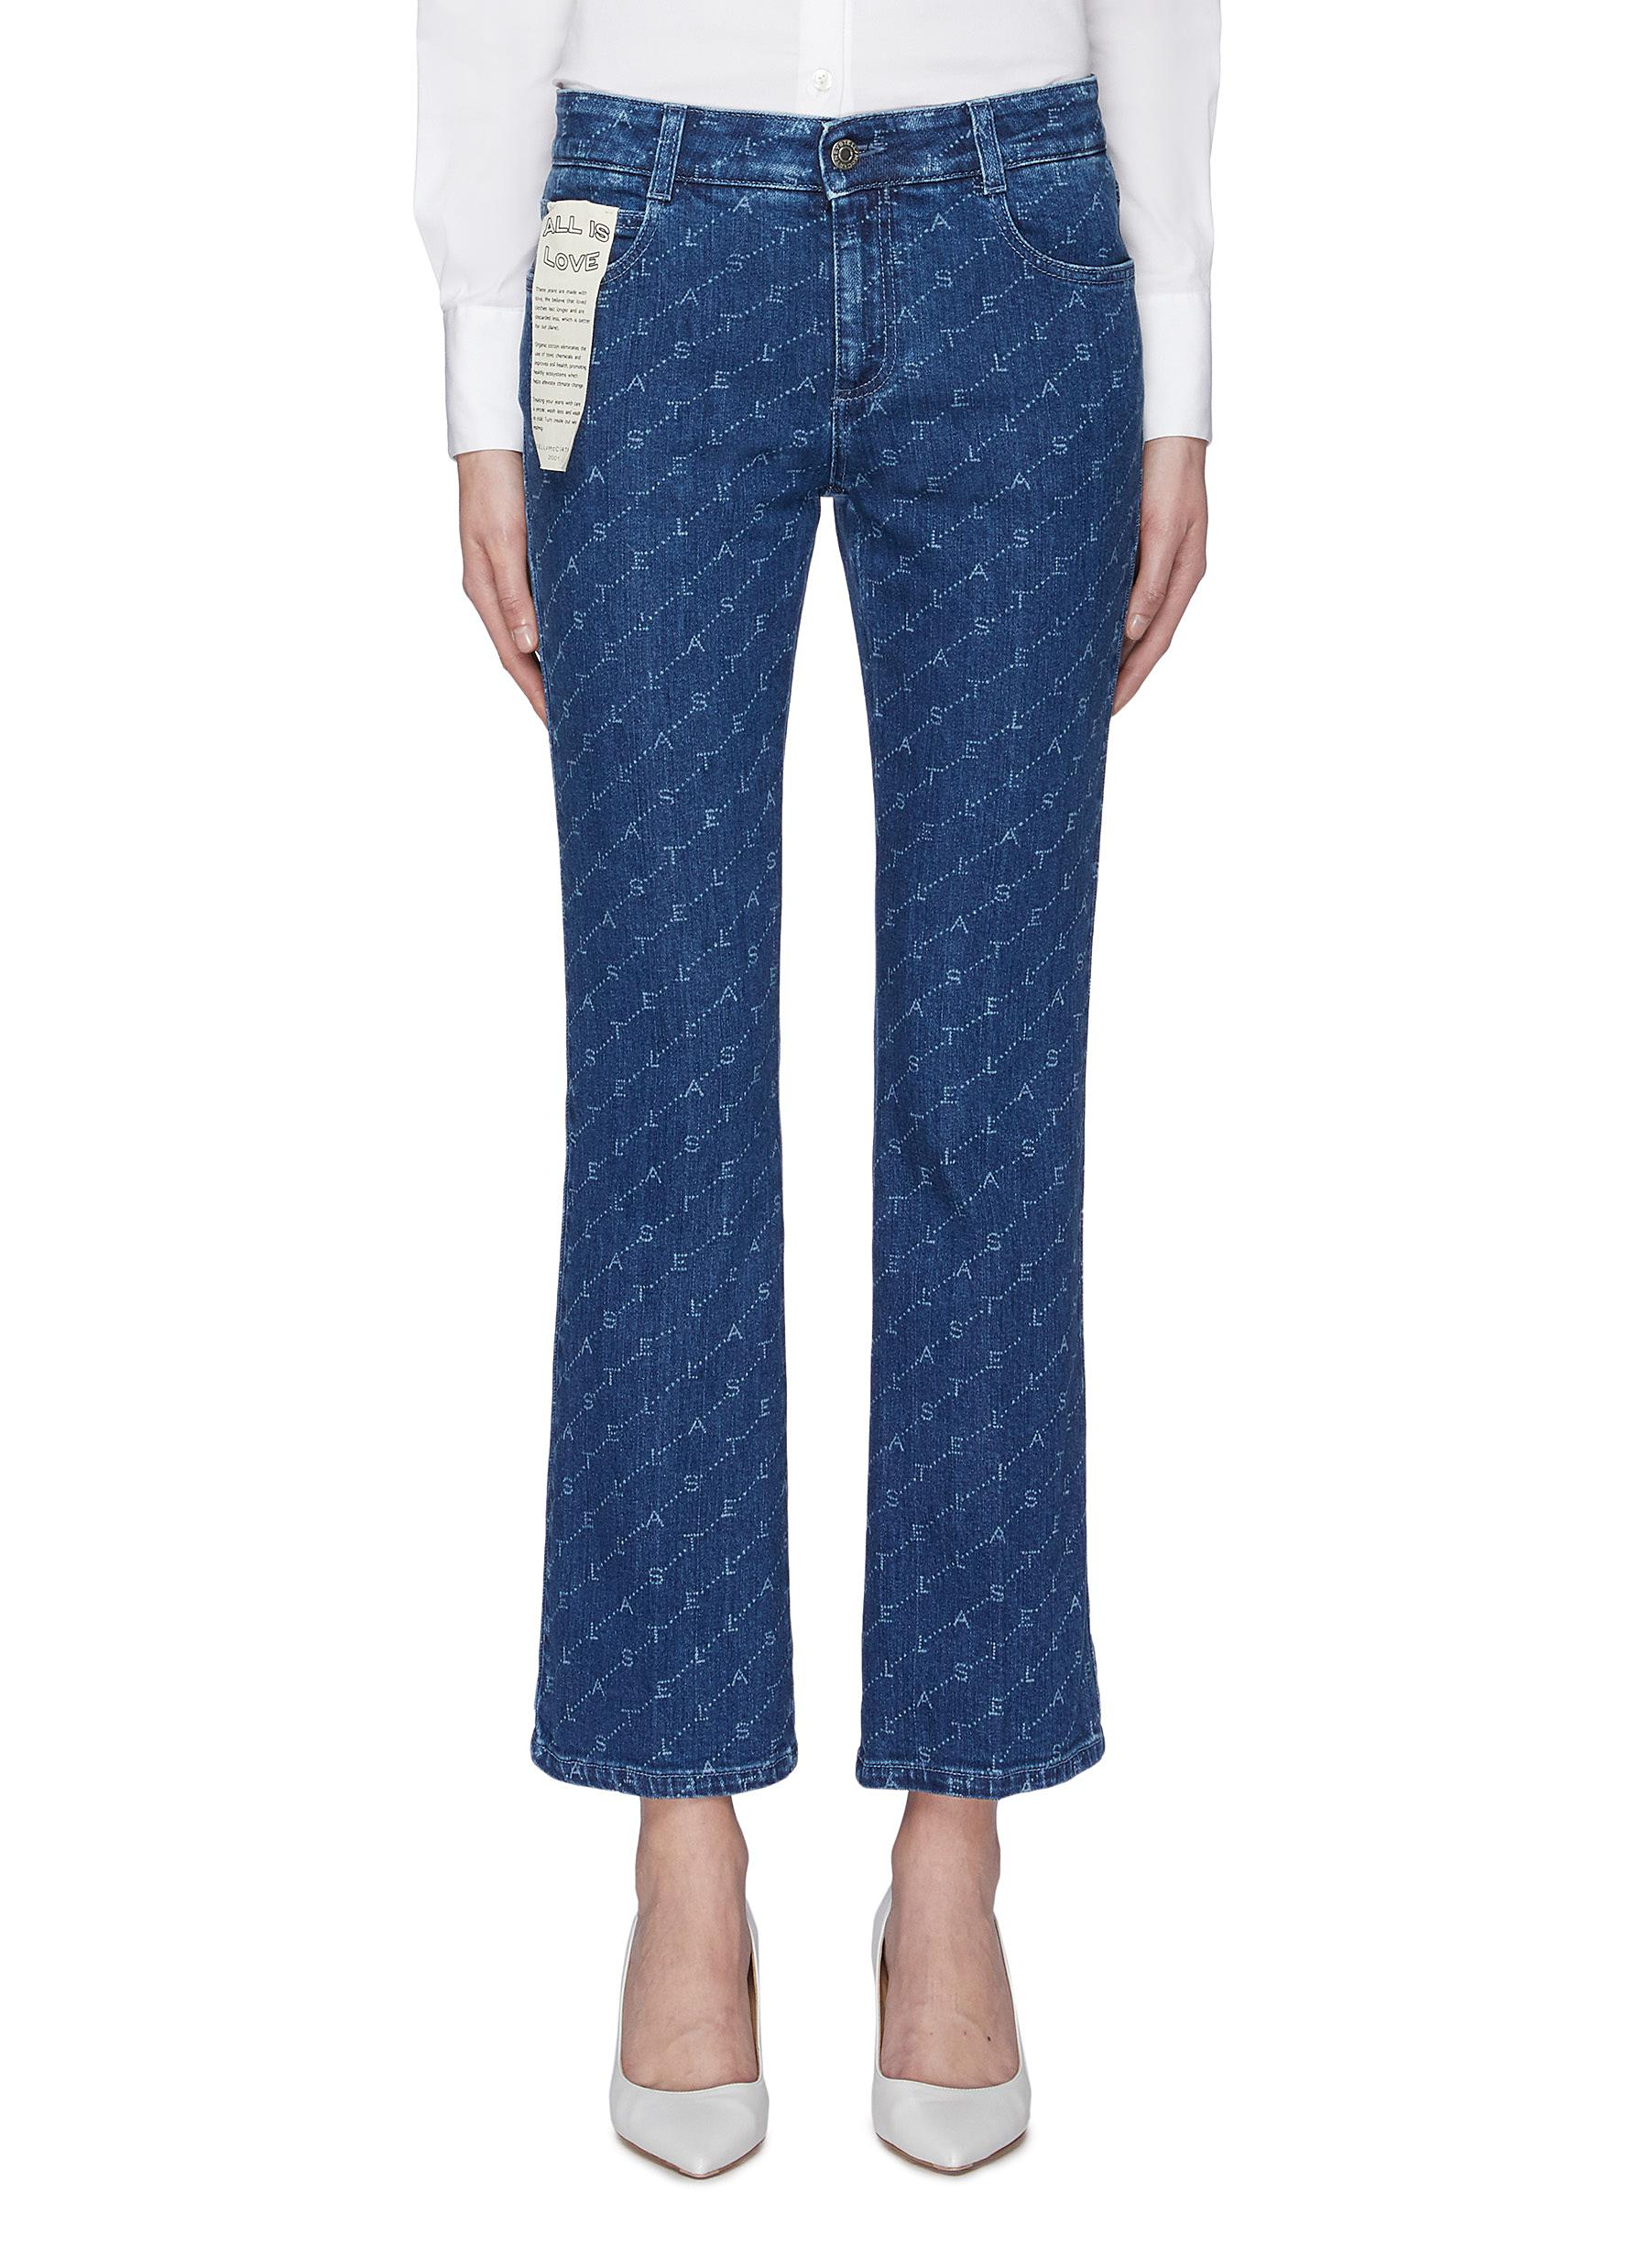 Monogram print cropped flared jeans by Stella Mccartney